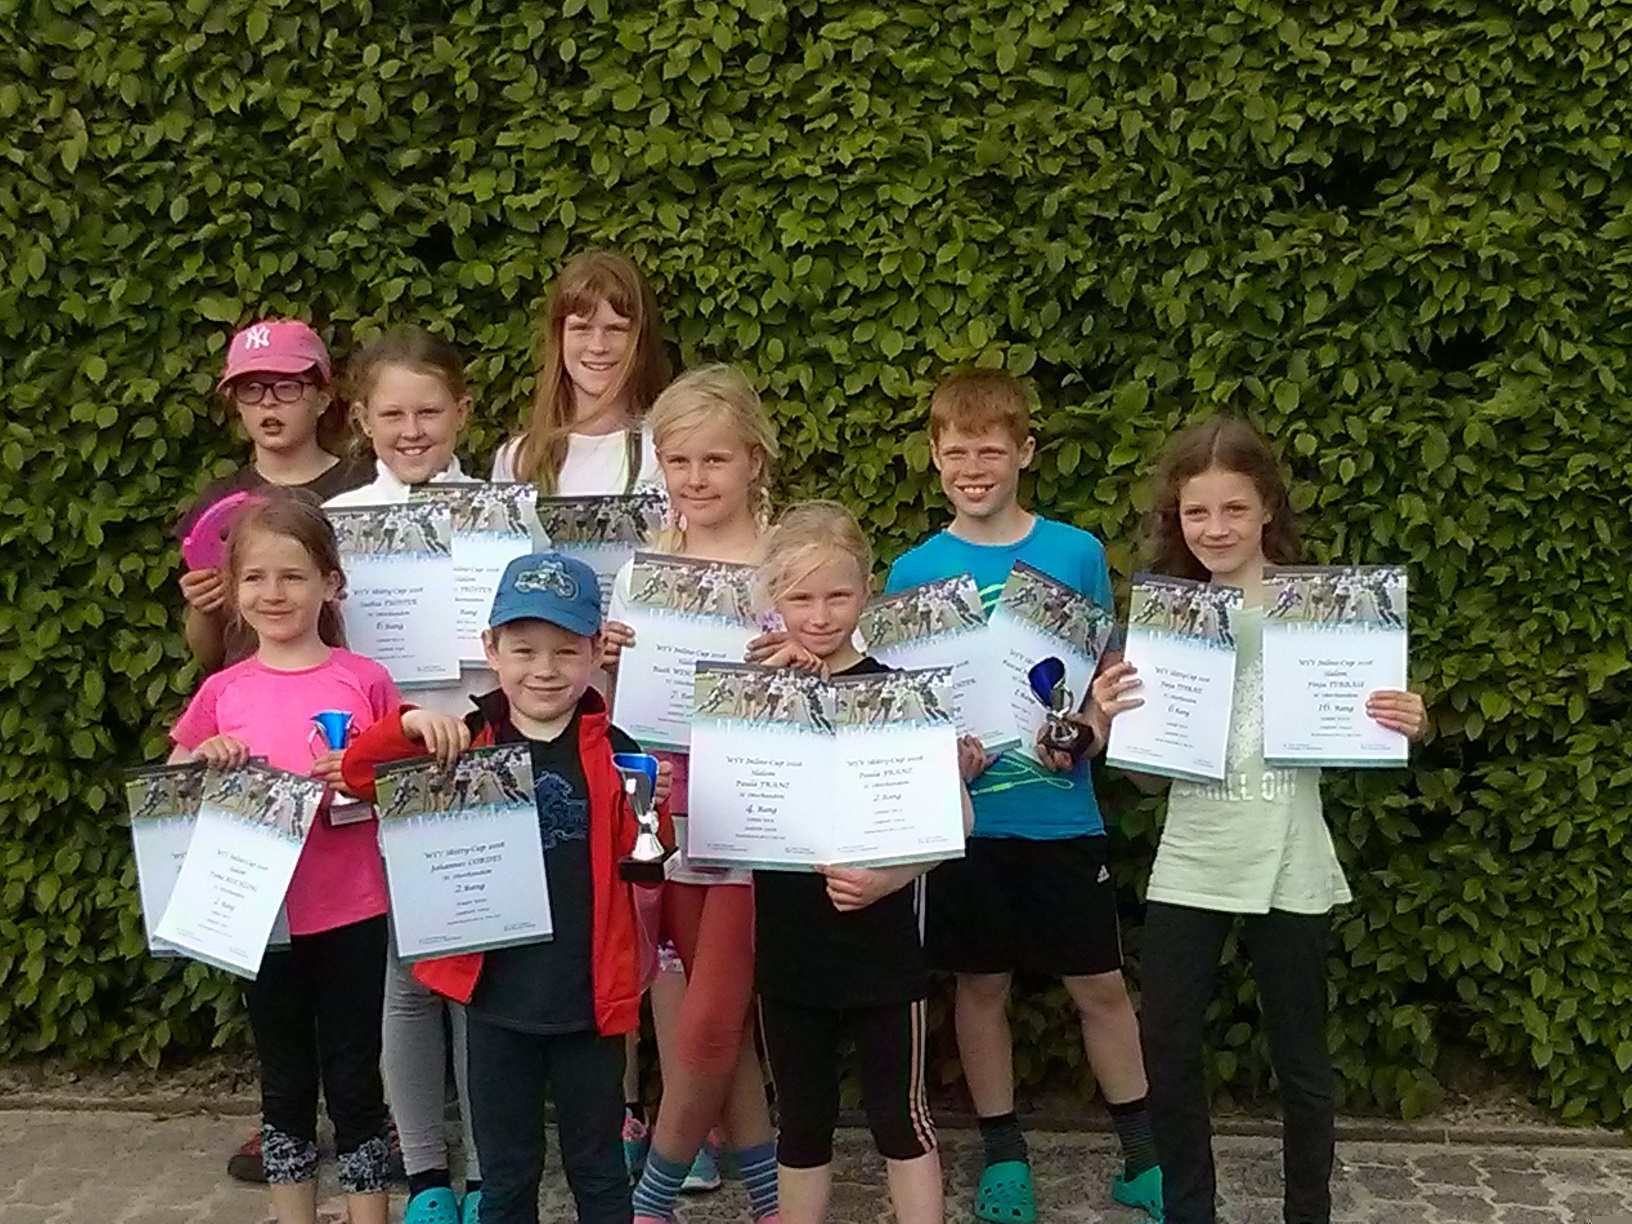 SCO Inline Kids 22.05.16 Rueckershausen